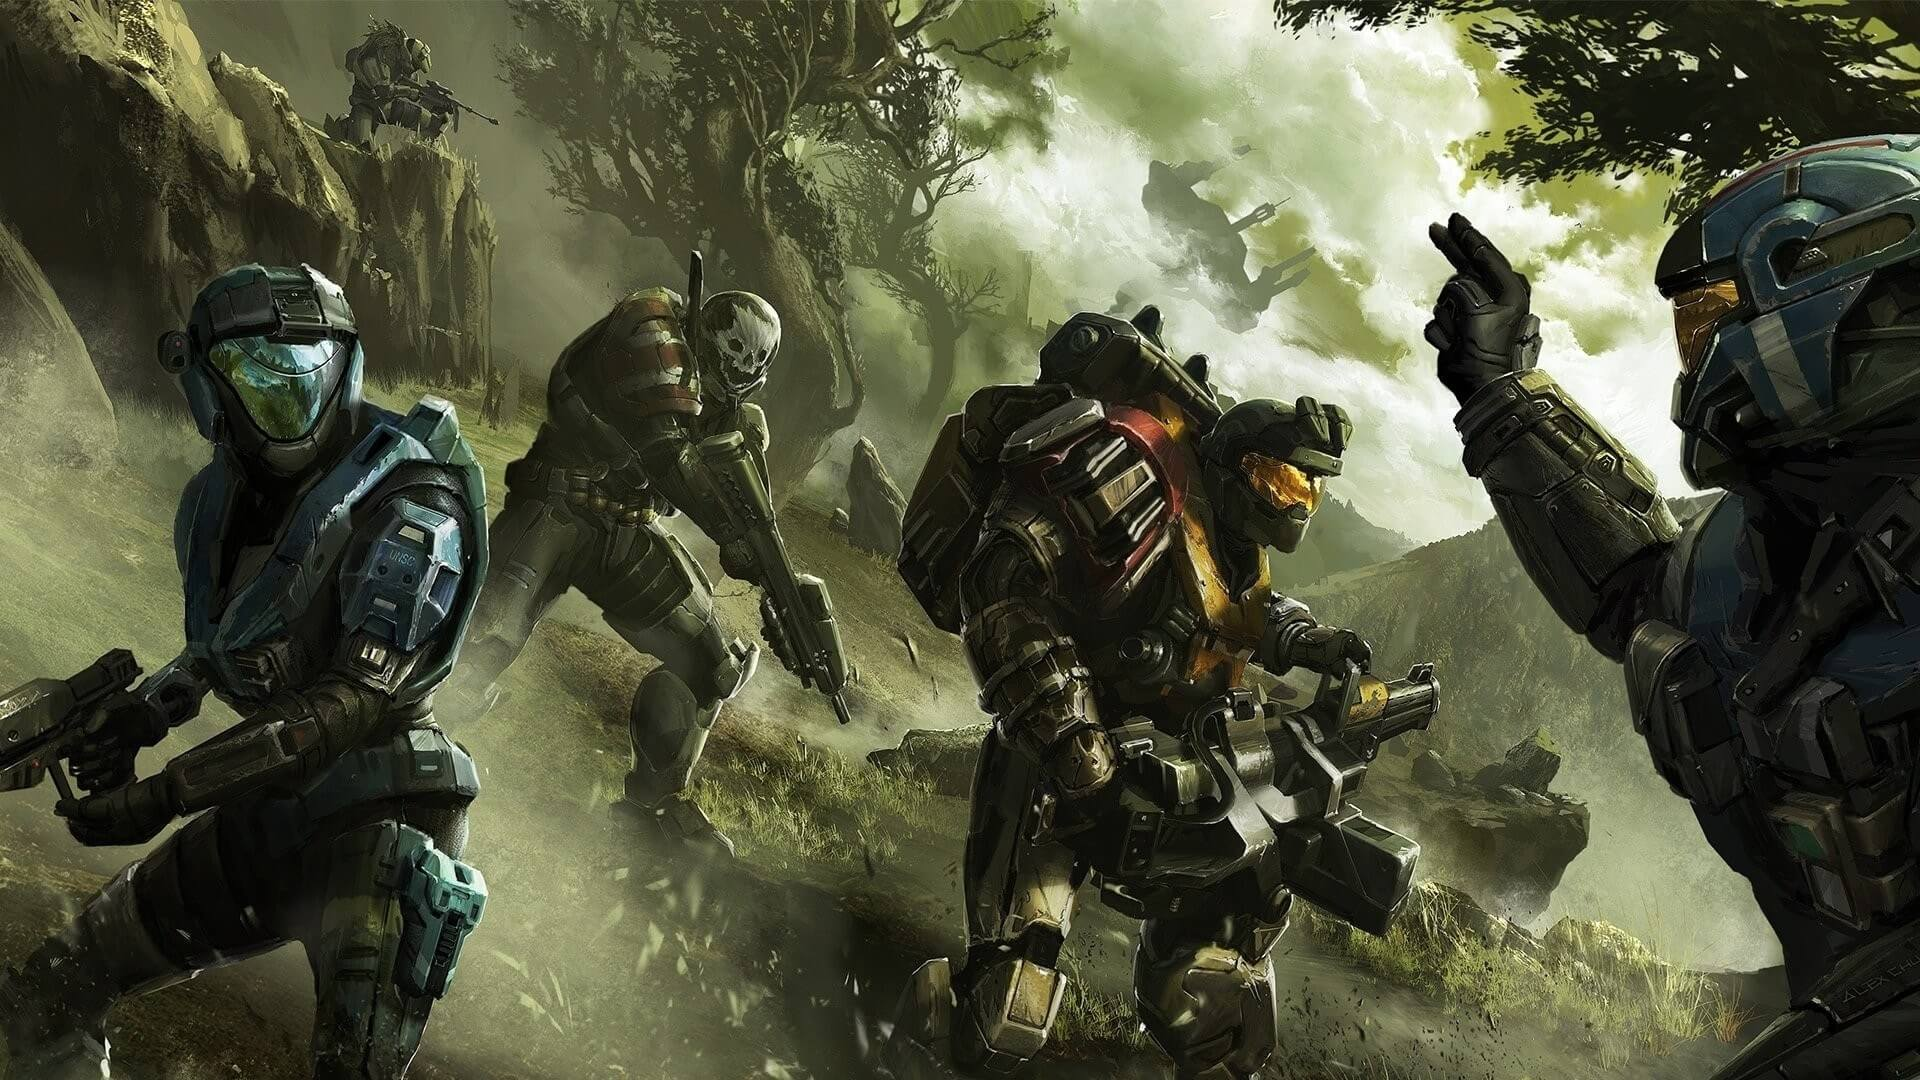 Halo reach pc specs halo reach system requirements 343 industries steam